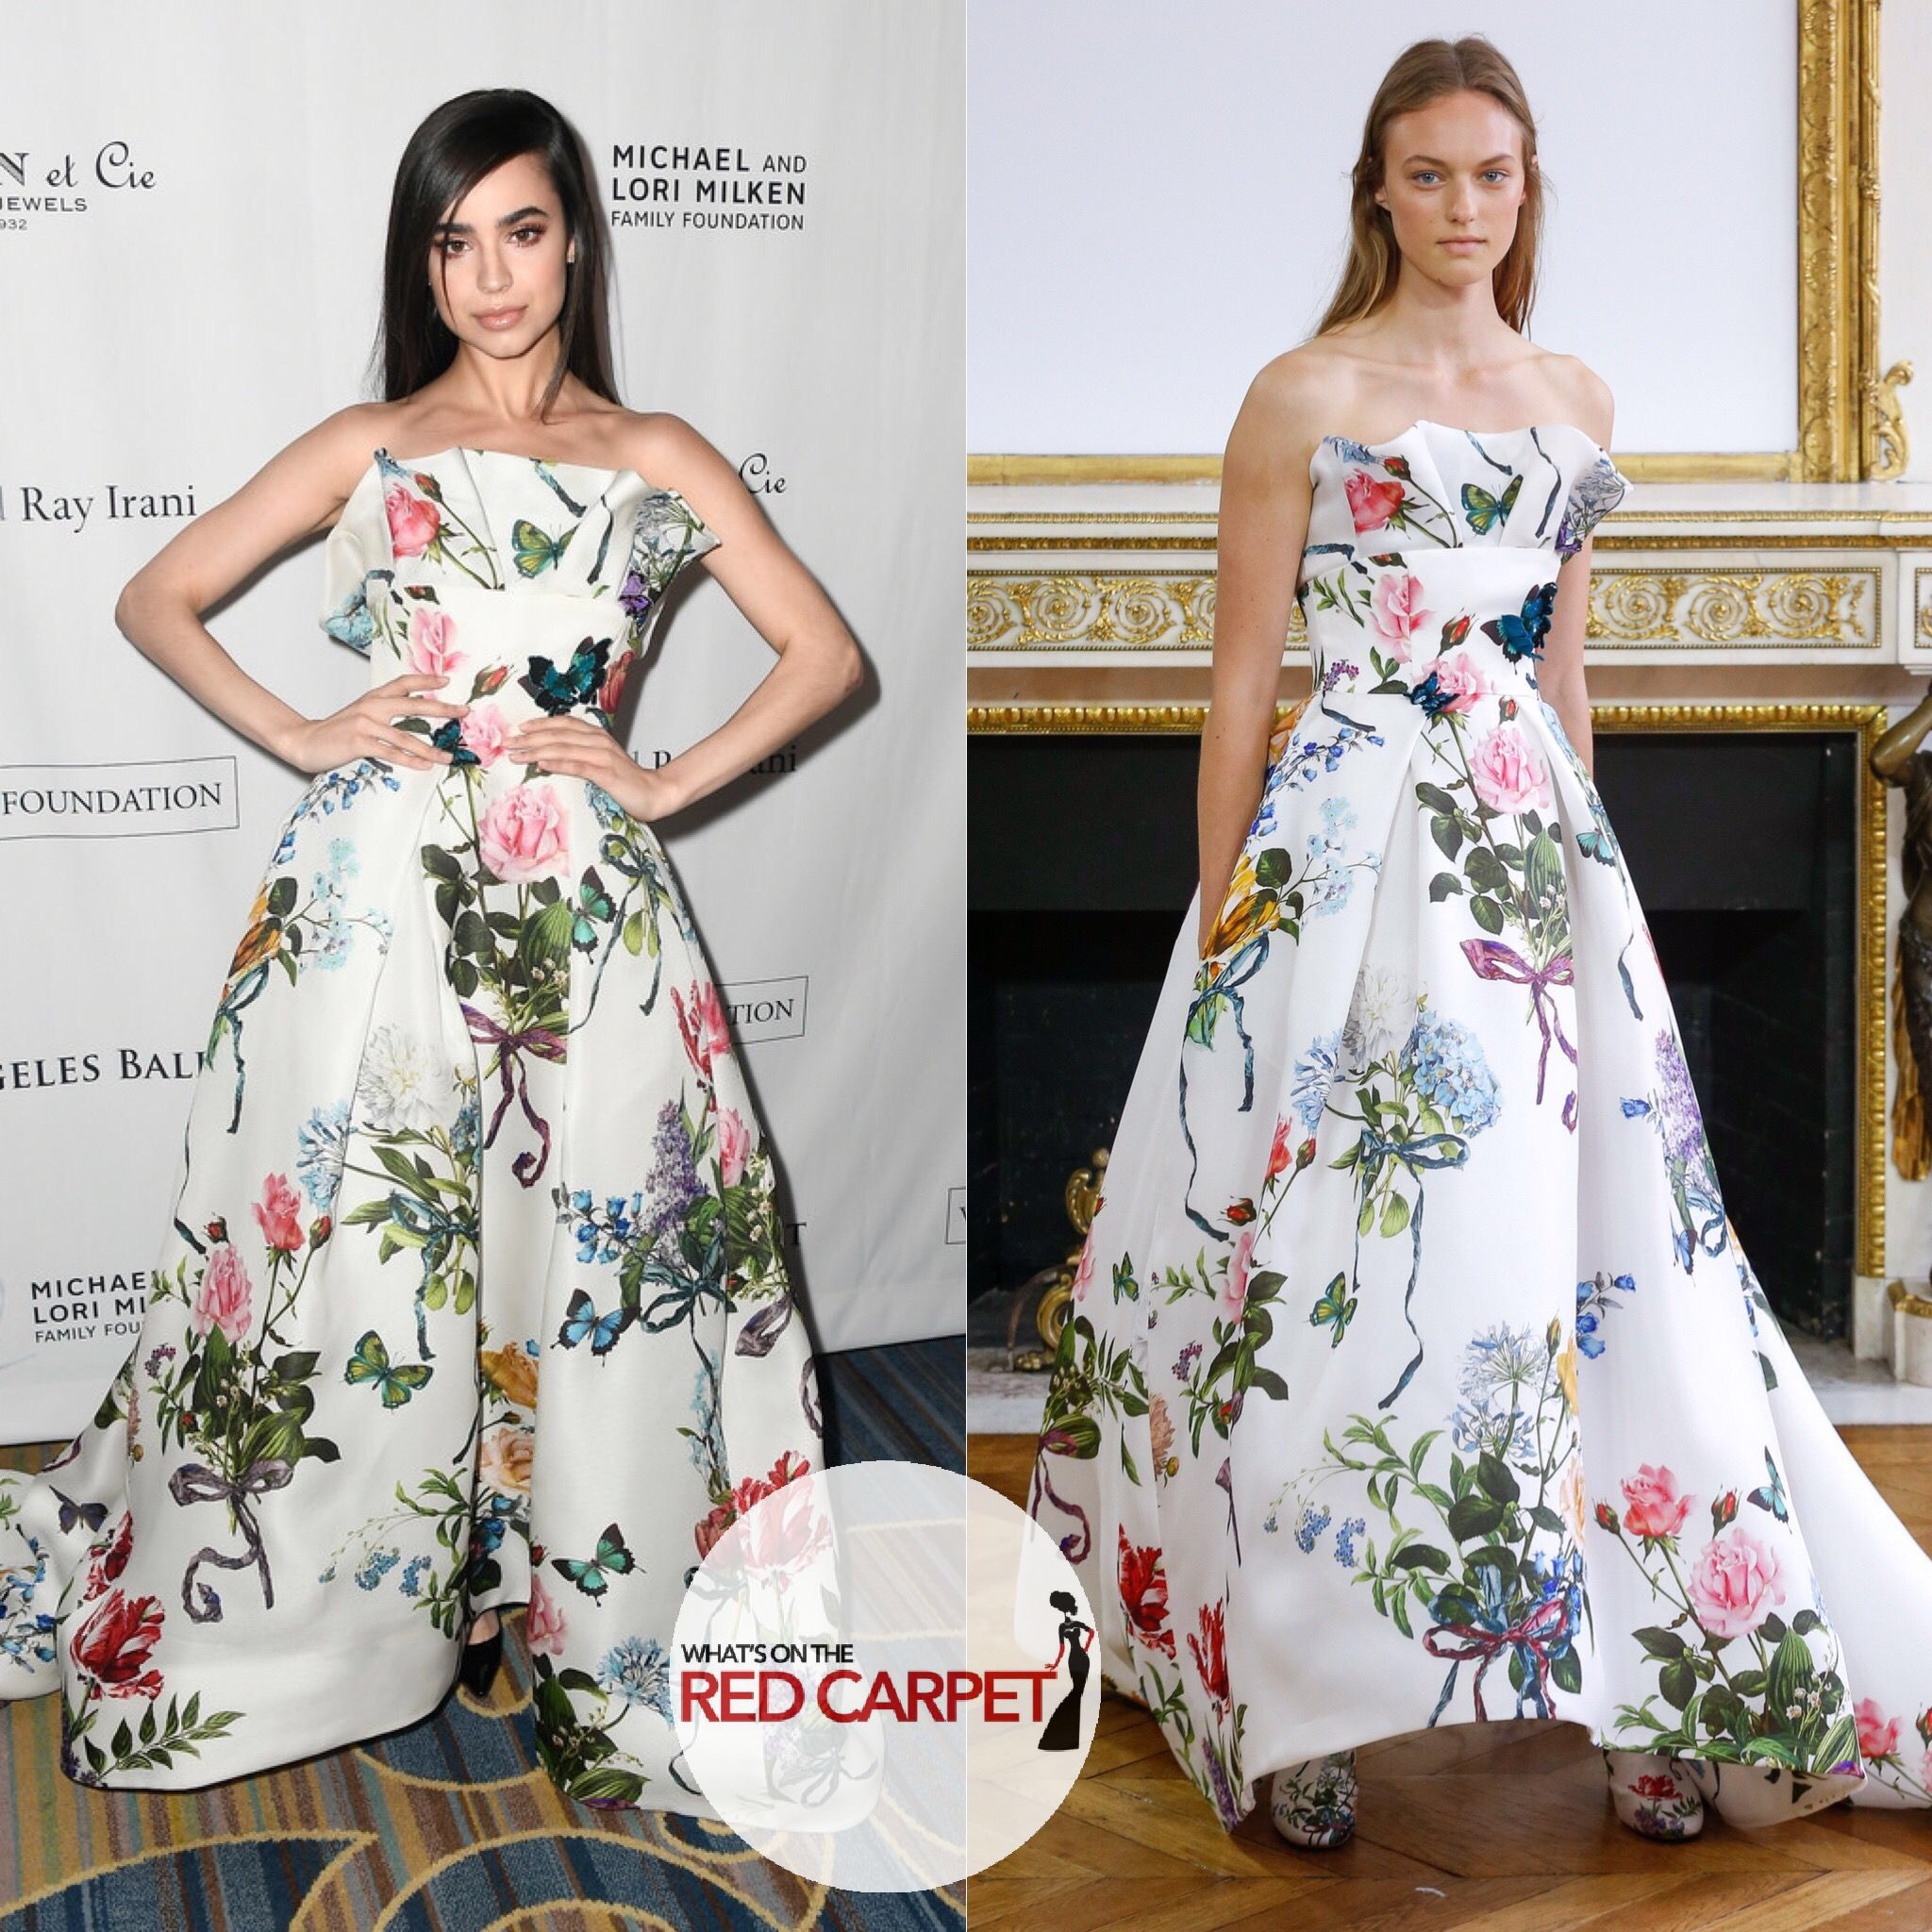 Sofia Carson wore Monique Lhuillier Spring 2018 RTW to the 12th Annual Los Angeles Ballet Gala Fashion style